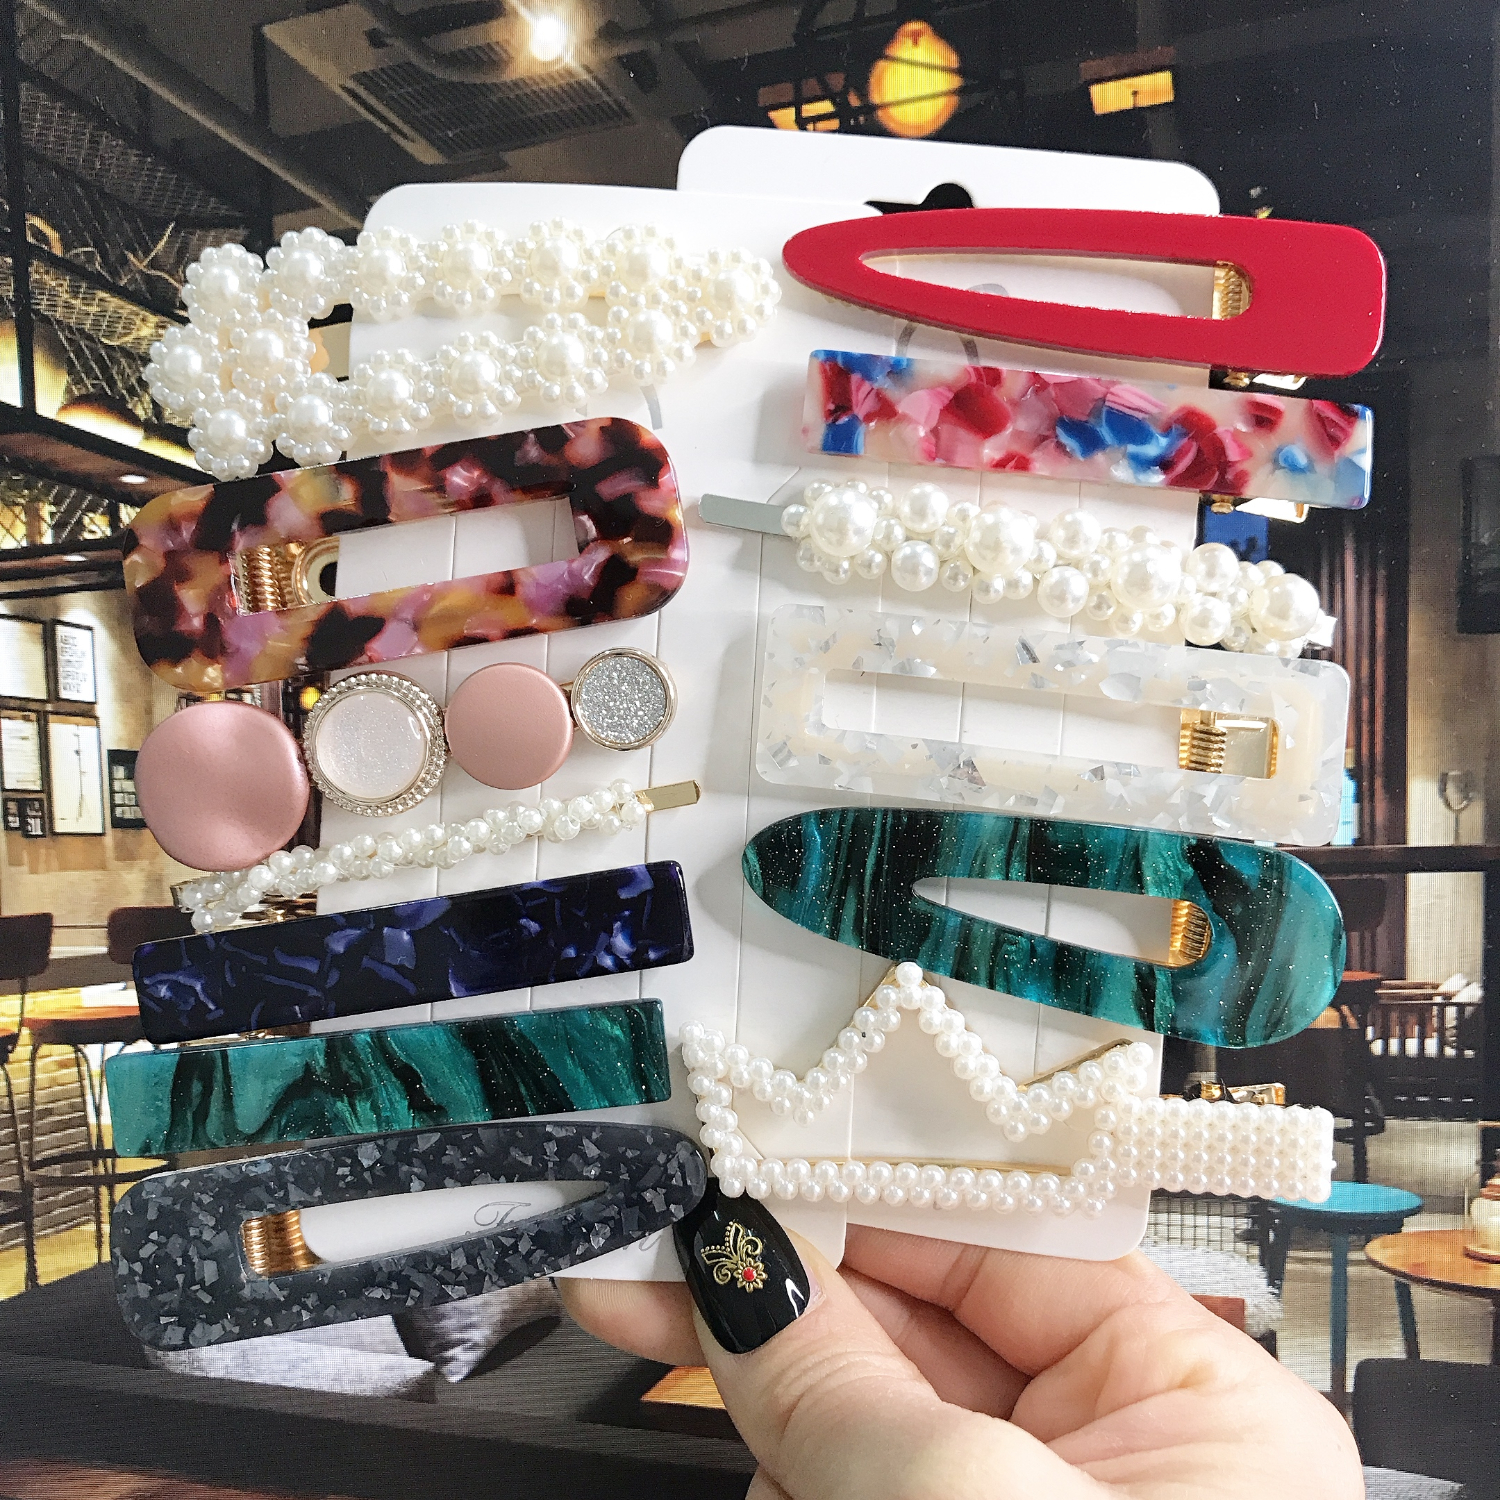 Ins Fashion Acrylic Hair Clip For Women Girls Barrette Set Pearls Hairpins Korean Geometric Hair Accessories Kids Hairgrip 2020